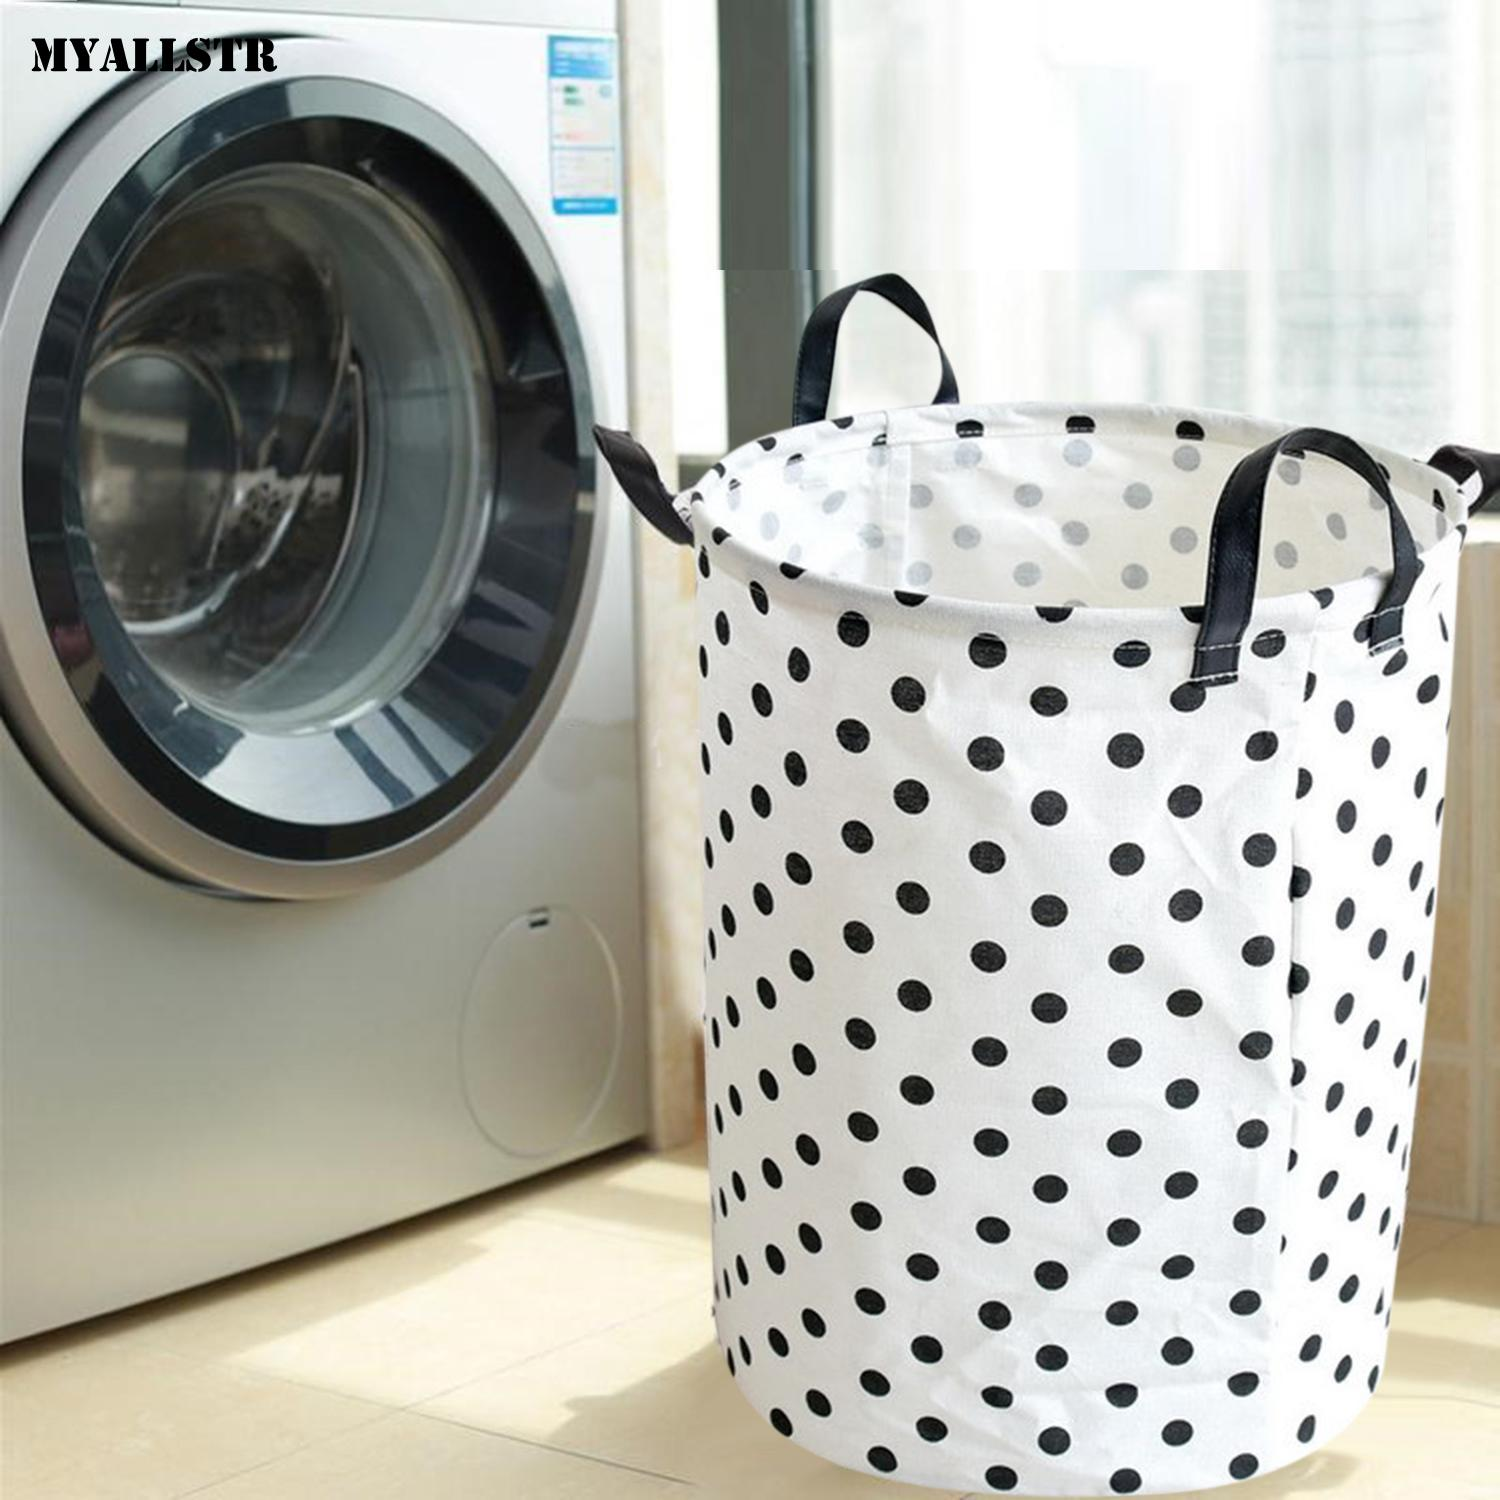 Foldable Waterproof Laundry Basket Toys Storage White Black Indoor Bucket 300g Dot